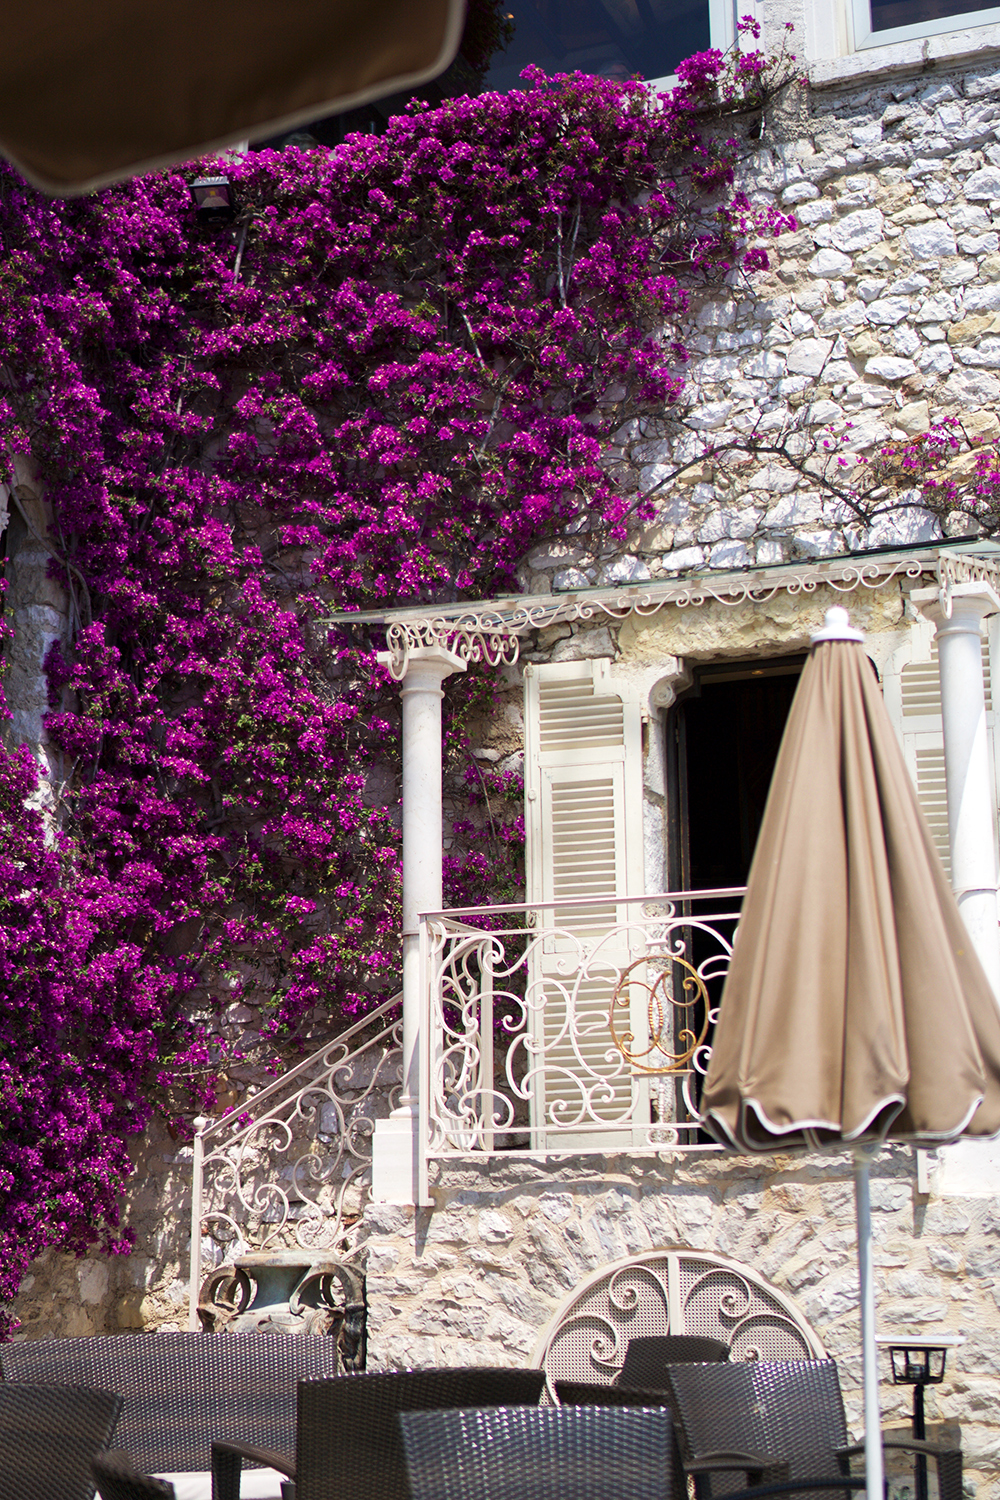 The entrance to the restaurant seen from where we were sitting sipping rose. Everything is perfection here!